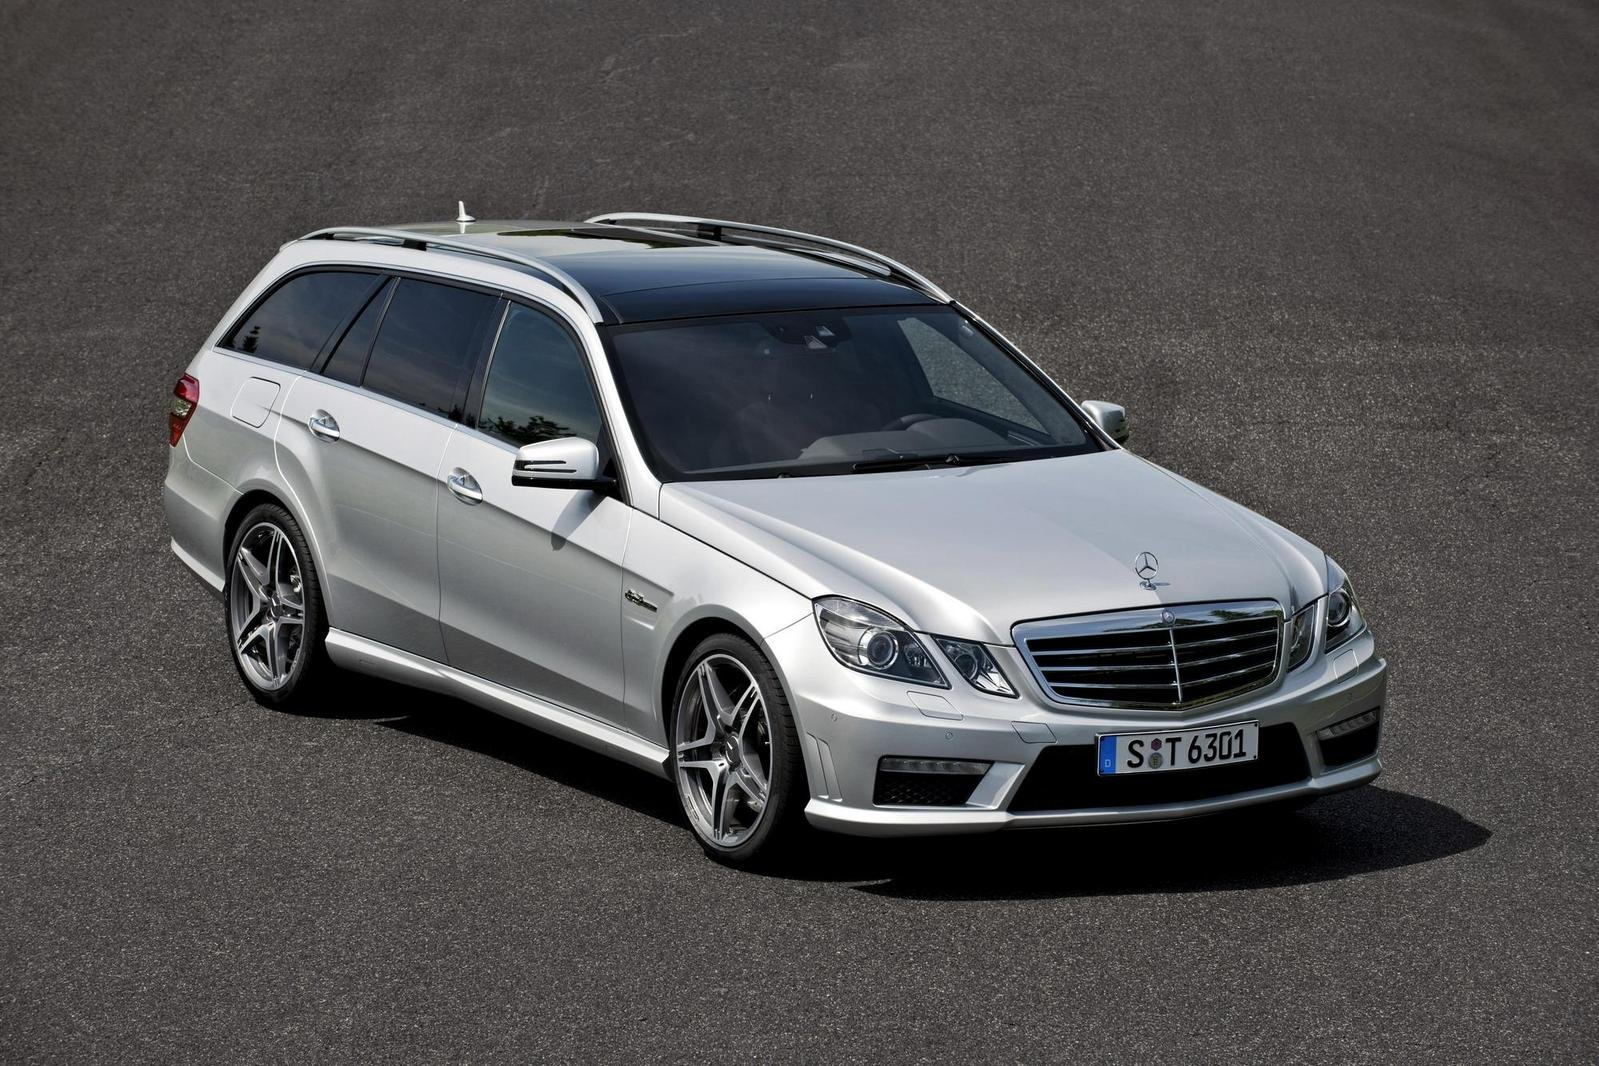 2010 mercedes benz e63 amg estate review top speed for Mercedes benz e63 amg price